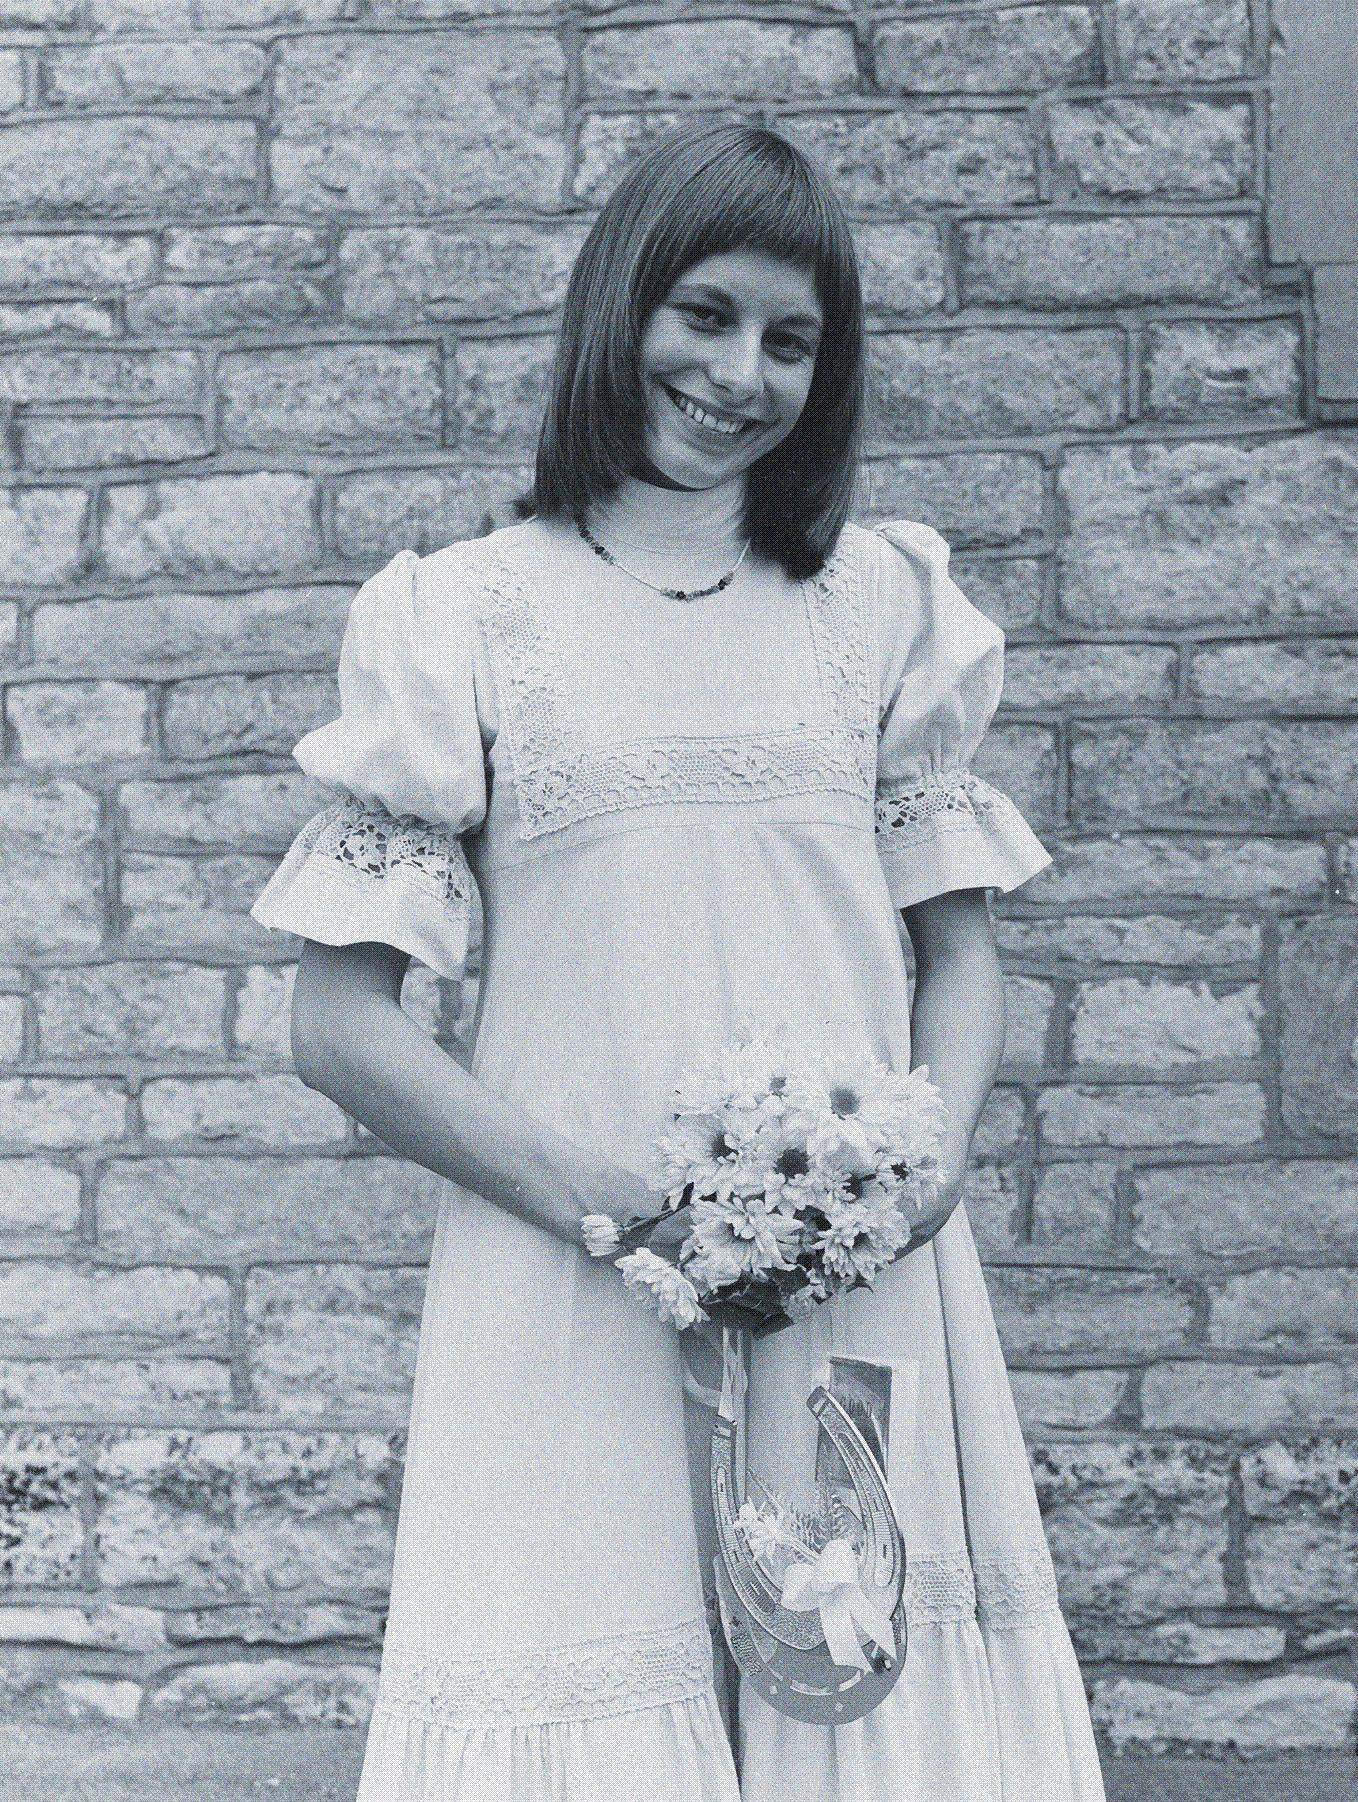 dress in laura and get free entry laura ashley wedding dresses Rose Gallop in her Laura Ashley wedding dress